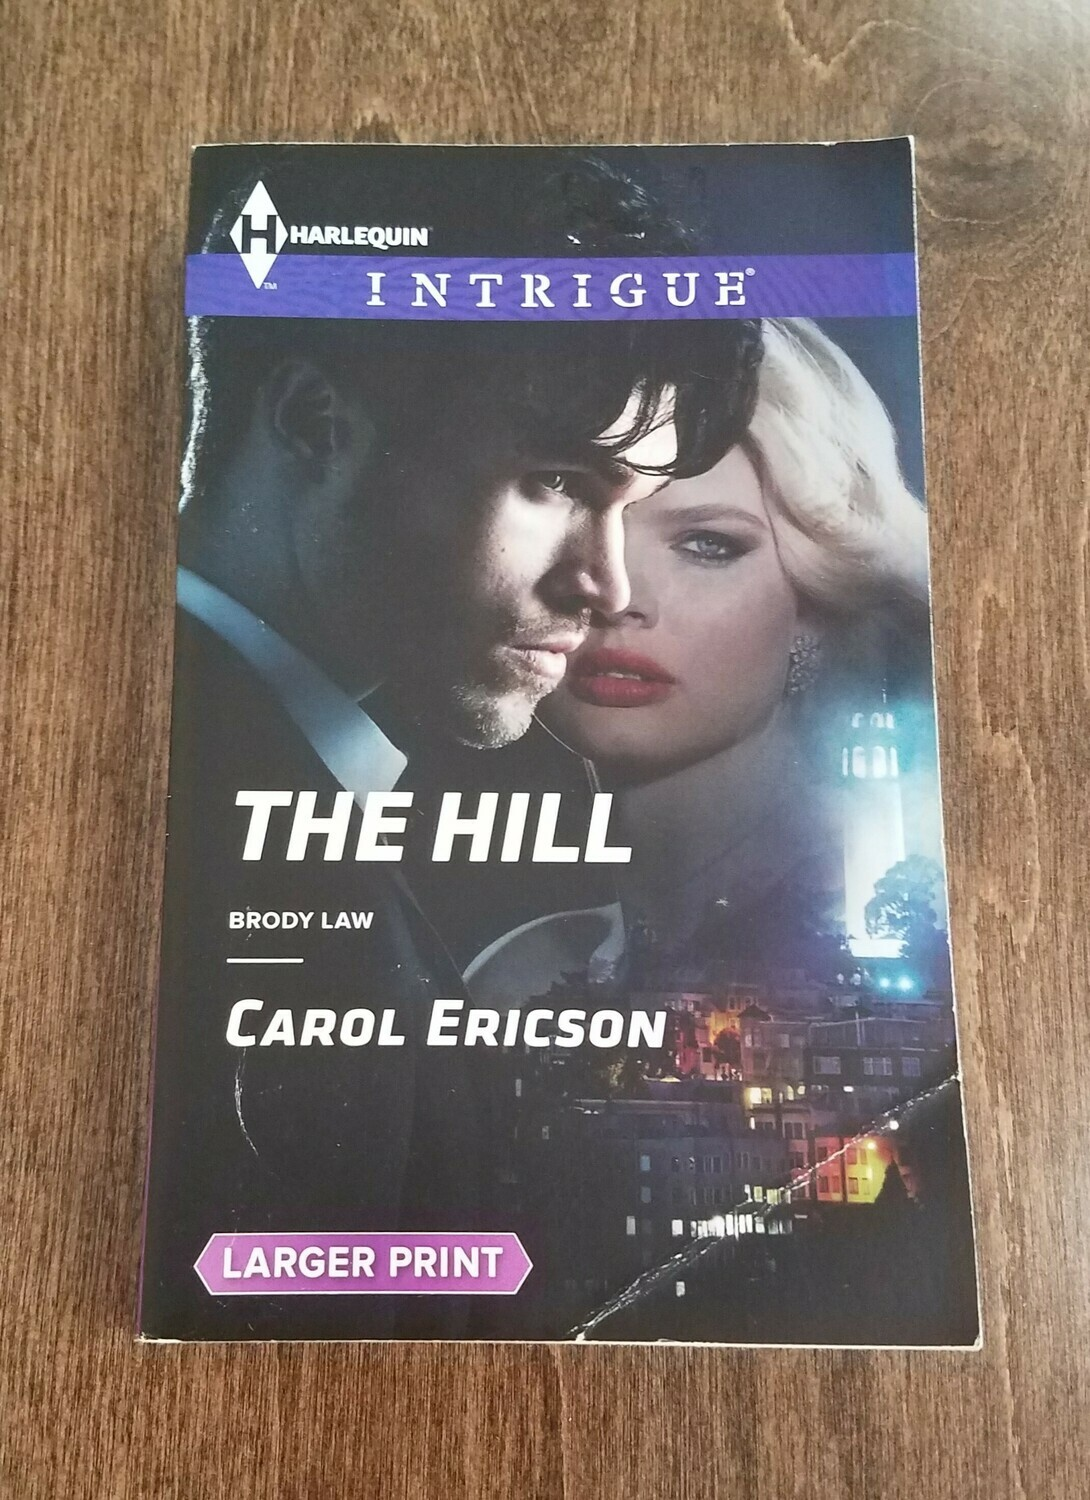 The Hill by Carol Ericson